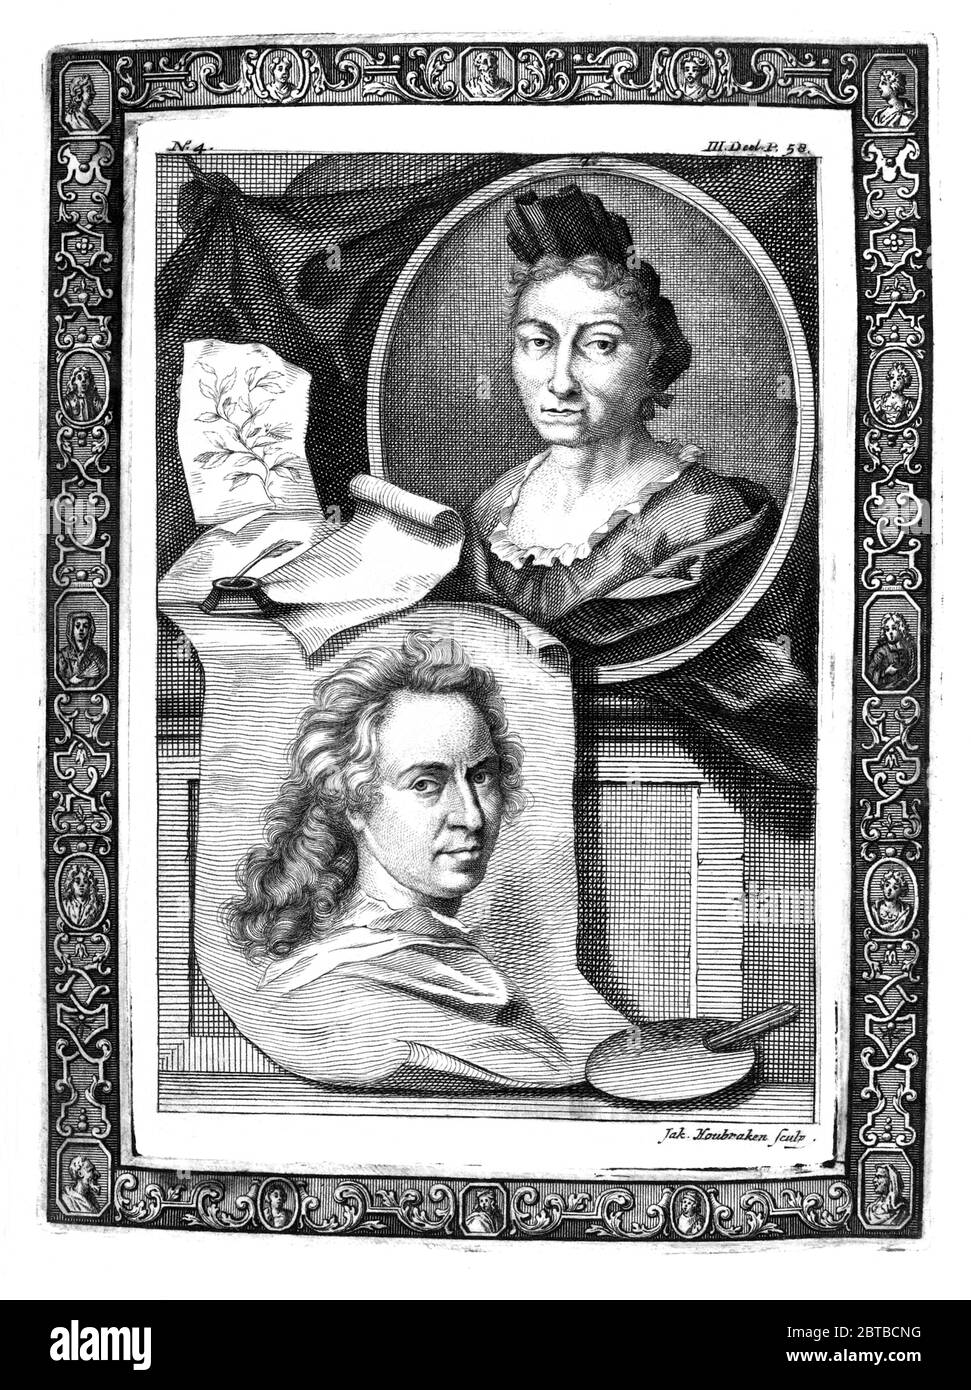 1729, GERMANY : The german naturalist woman painter , scientific illustrator and biologist MARIA SIBYLLA MERIAN ( 1647 - 1717 ). Sybylla's father was the Swiss engraver and pubblisher Matthäus Merian ( Matthew , 1593 - 1650 ) the Elder . Portrait by Jacobus Houbraken ( 1698 - 1780 ), after Georg Gsell, with the portrait (below) of Dutch portraitist painter David van der Plas ( 1647 - 1704 ). - SYBILLA - HISTORY - foto storica storiche - portrait - ritratto - NATURALISTA - NATURALIST - SCIENZA - SCIENCE - BIOLOGY - BIOLOGIA - illustratrice - illustratore - illustrator - woman painter - pittrice Stock Photo